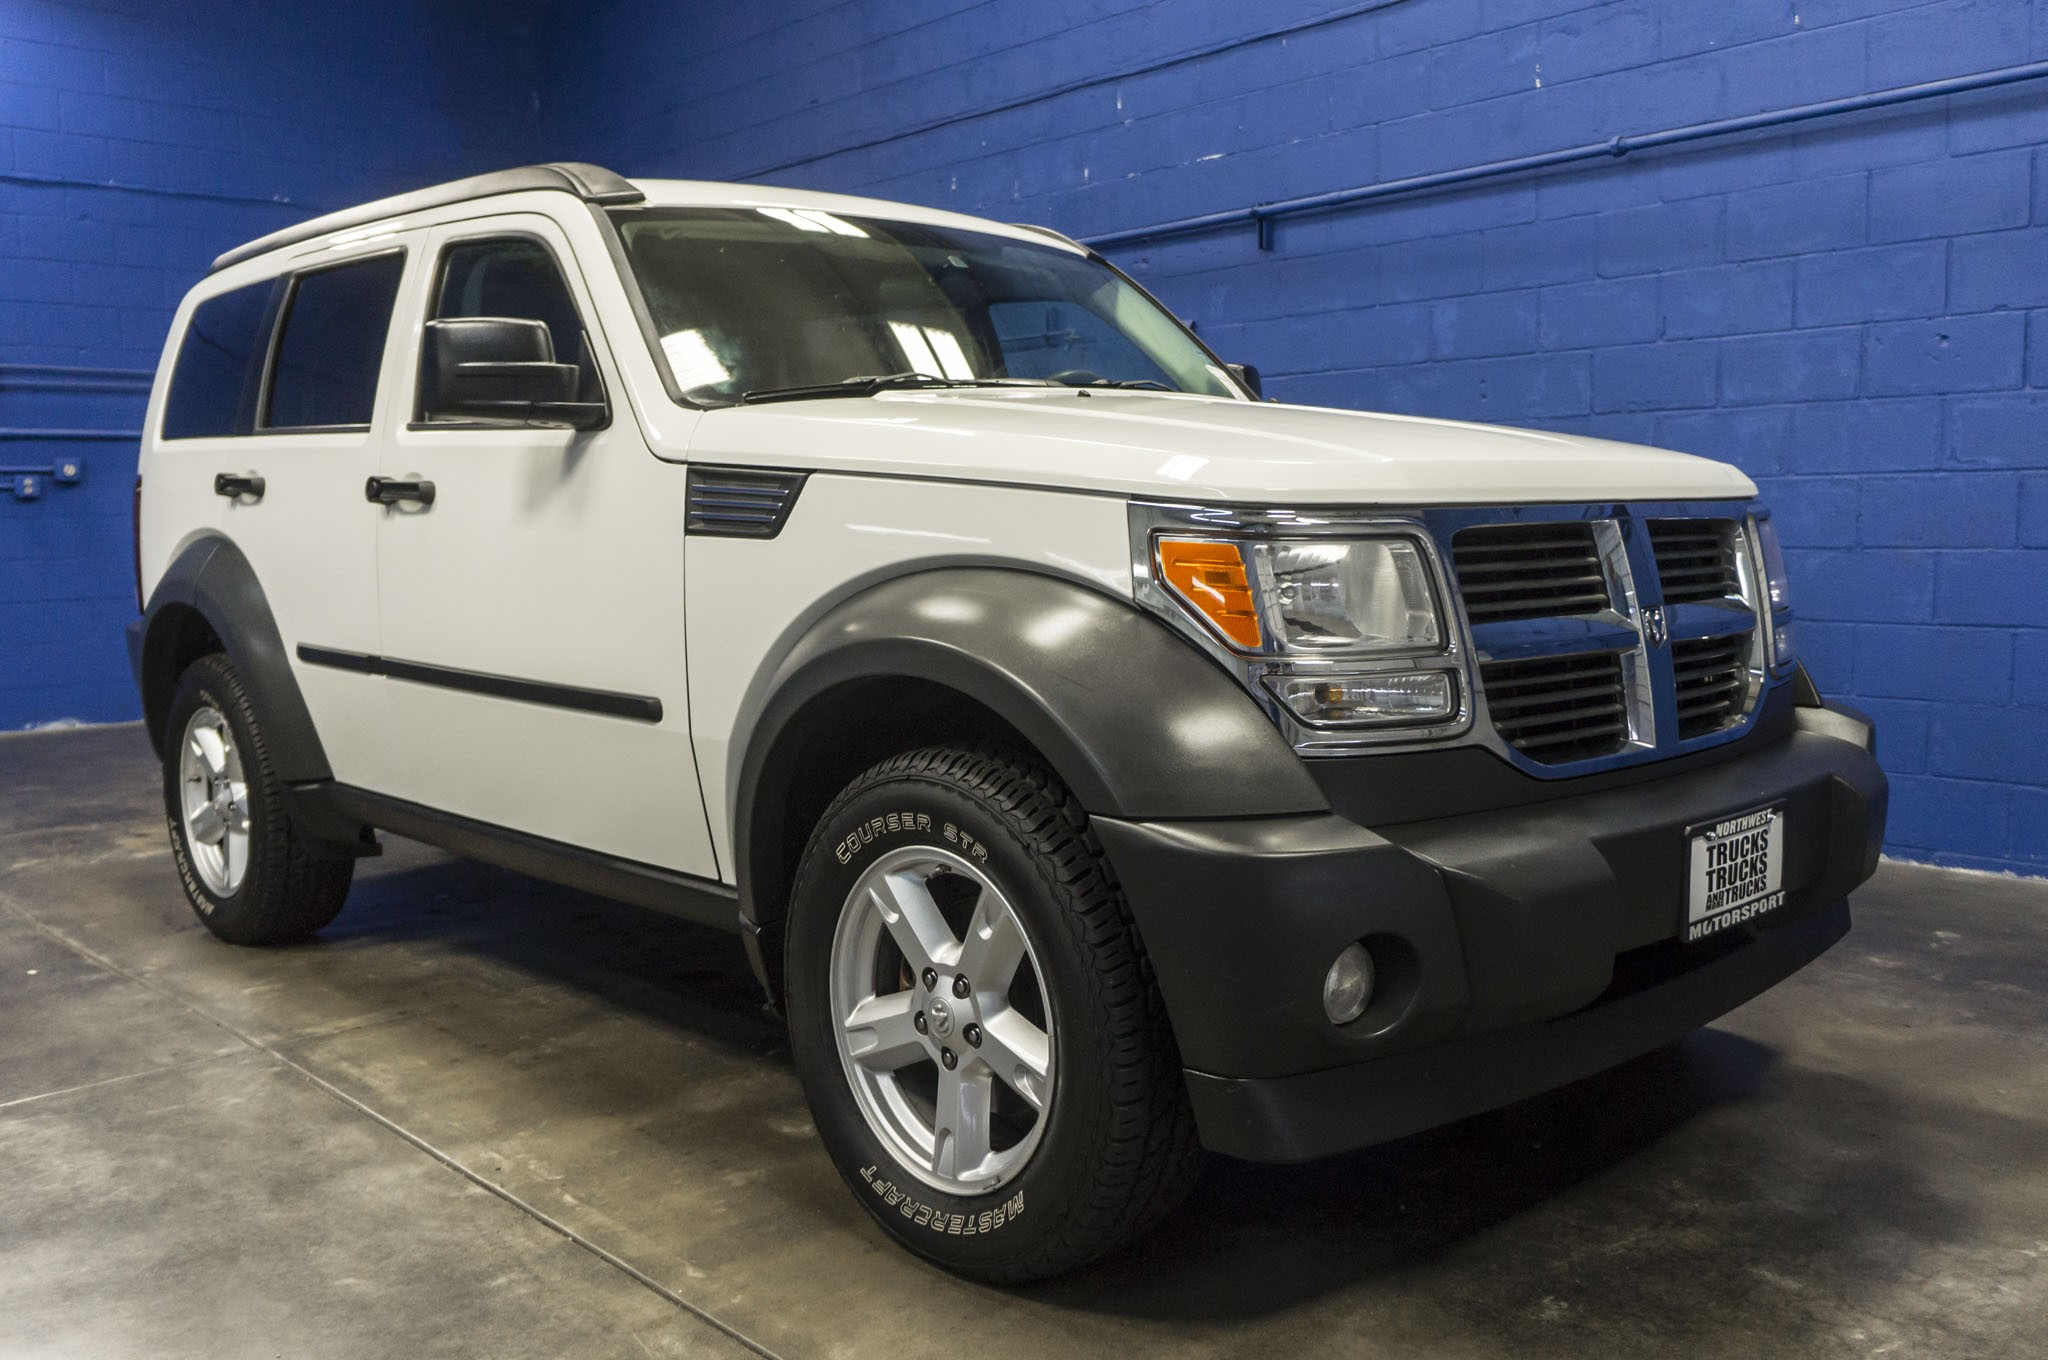 used 2007 dodge nitro sxt 4x4 suv for sale 31601a. Black Bedroom Furniture Sets. Home Design Ideas